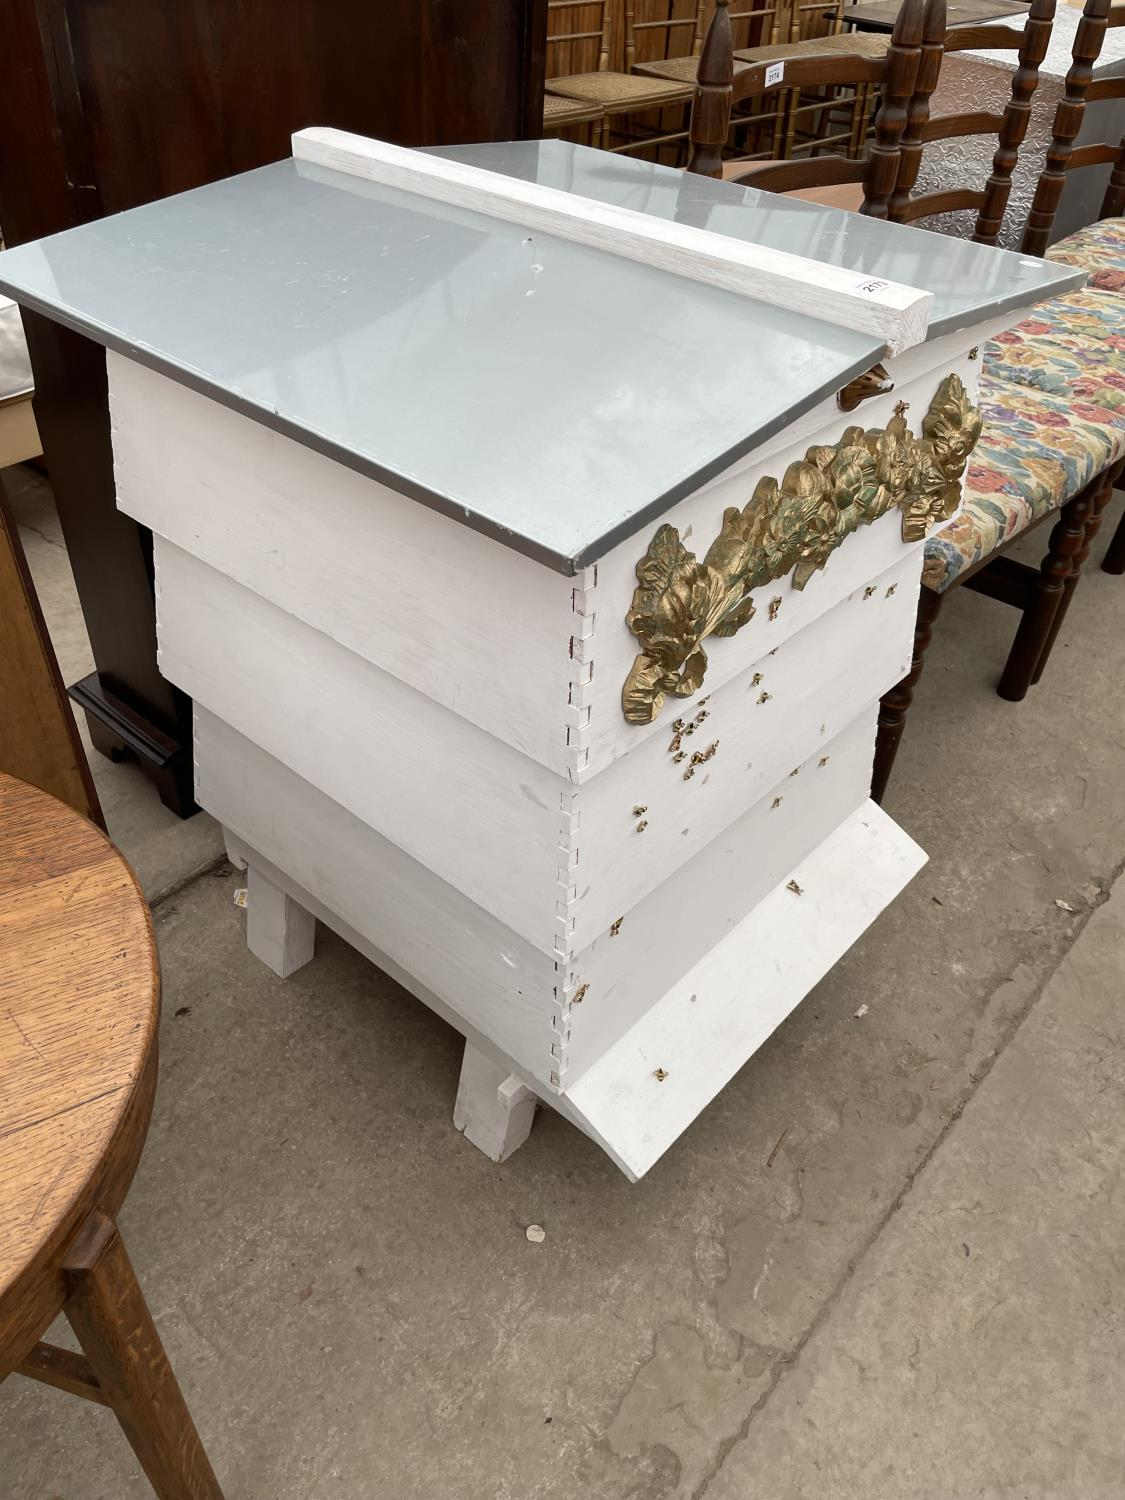 A FOUR TIER WHITE PAINTED FORMER BEEHIVE, DECORATED WITH BEES AND FLOWERS